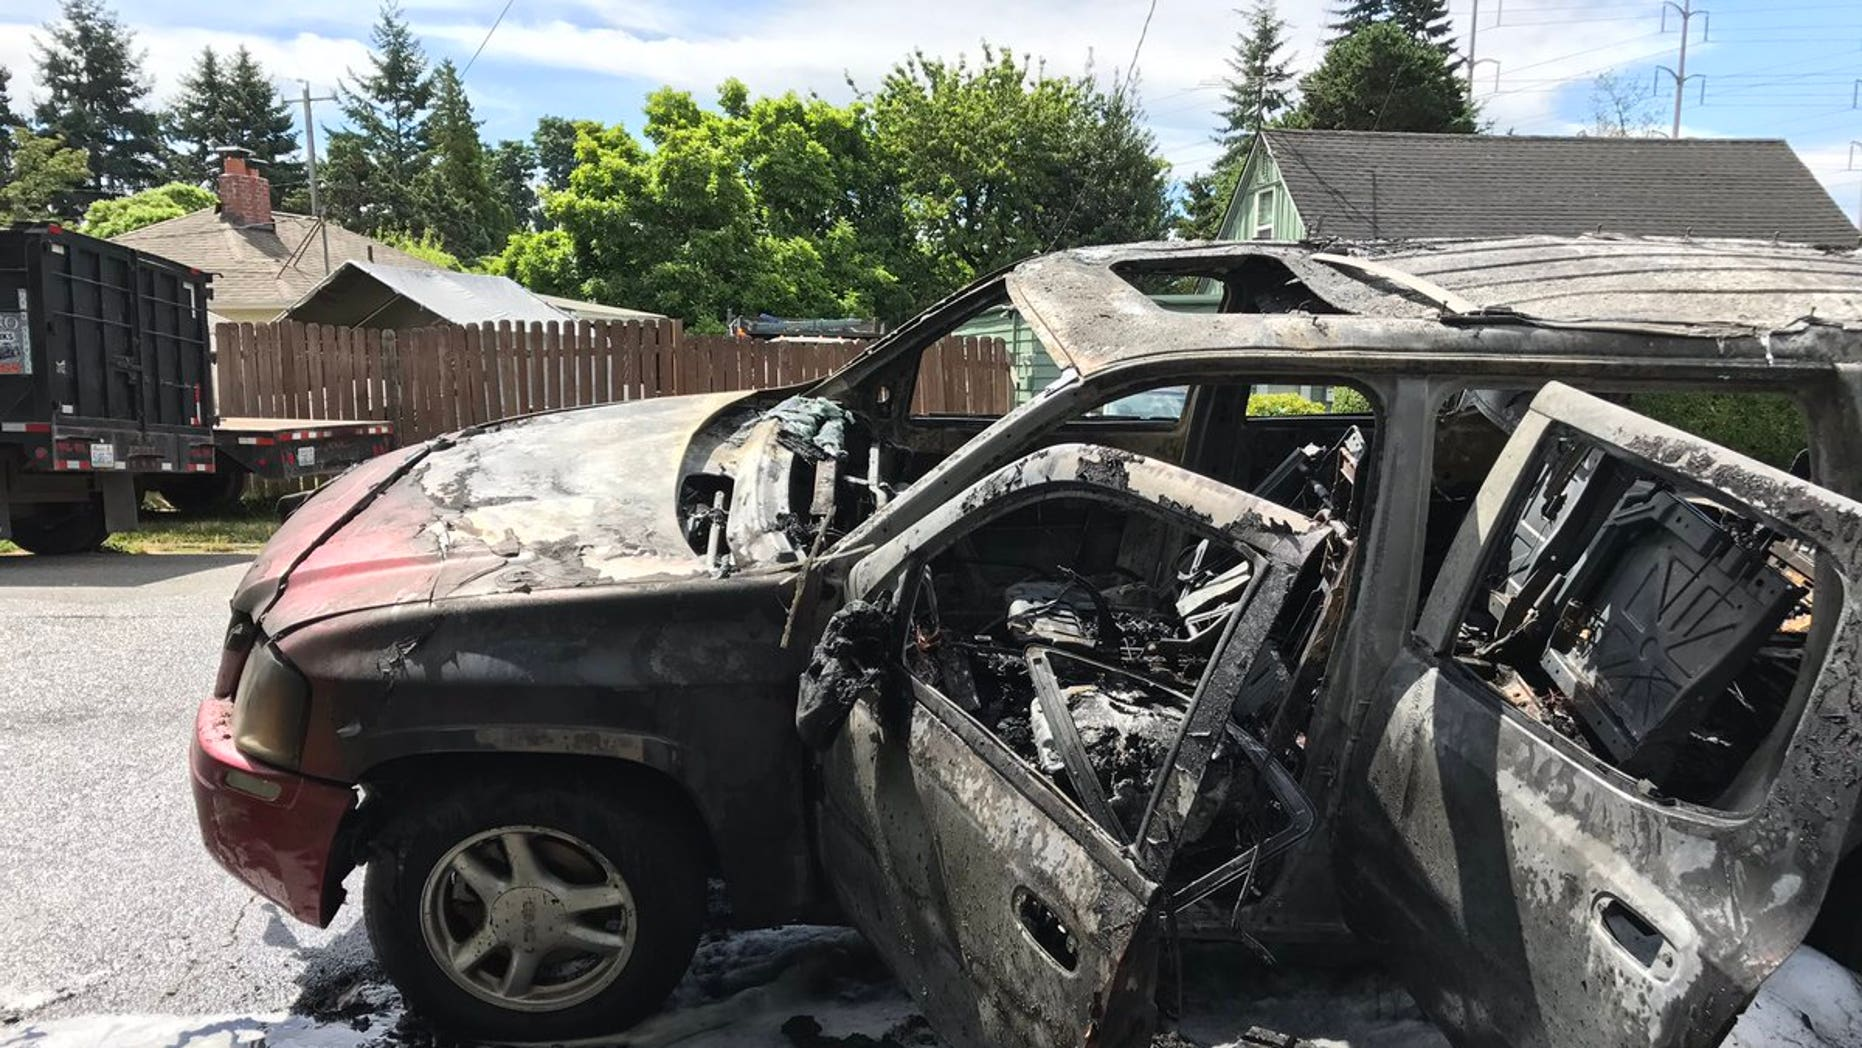 Burnt car after 14-year-old and friends have Roman Candle fight.